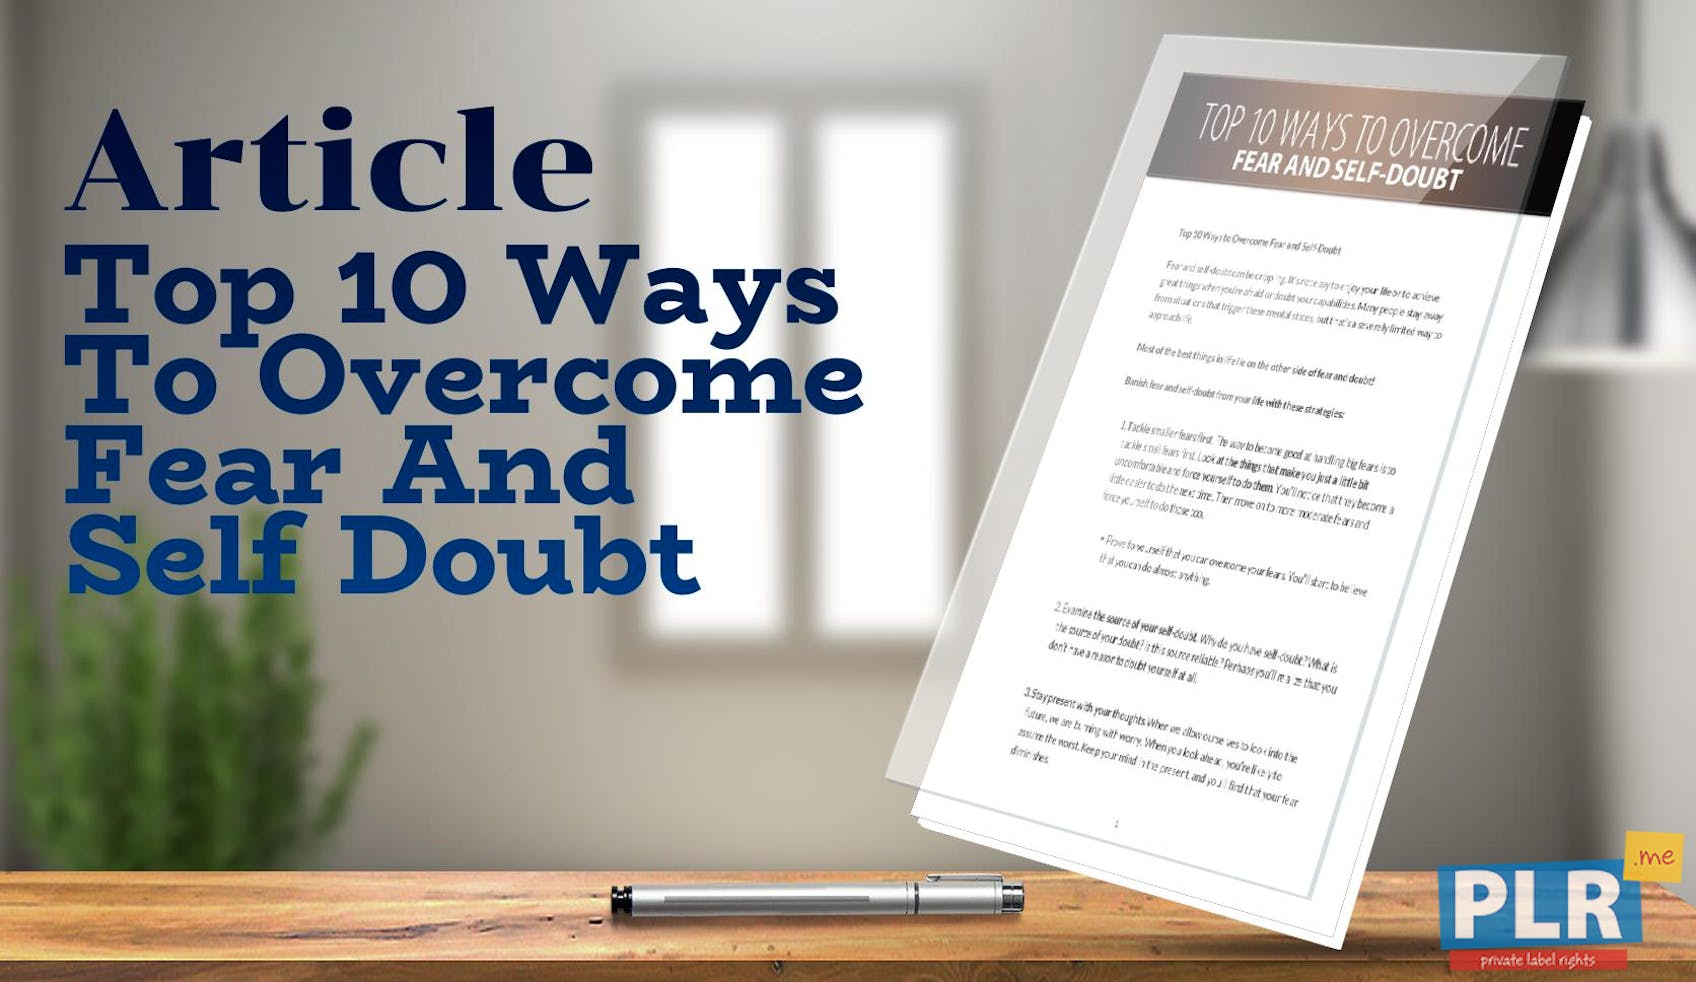 Top 10 Ways To Overcome Fear And Self Doubt